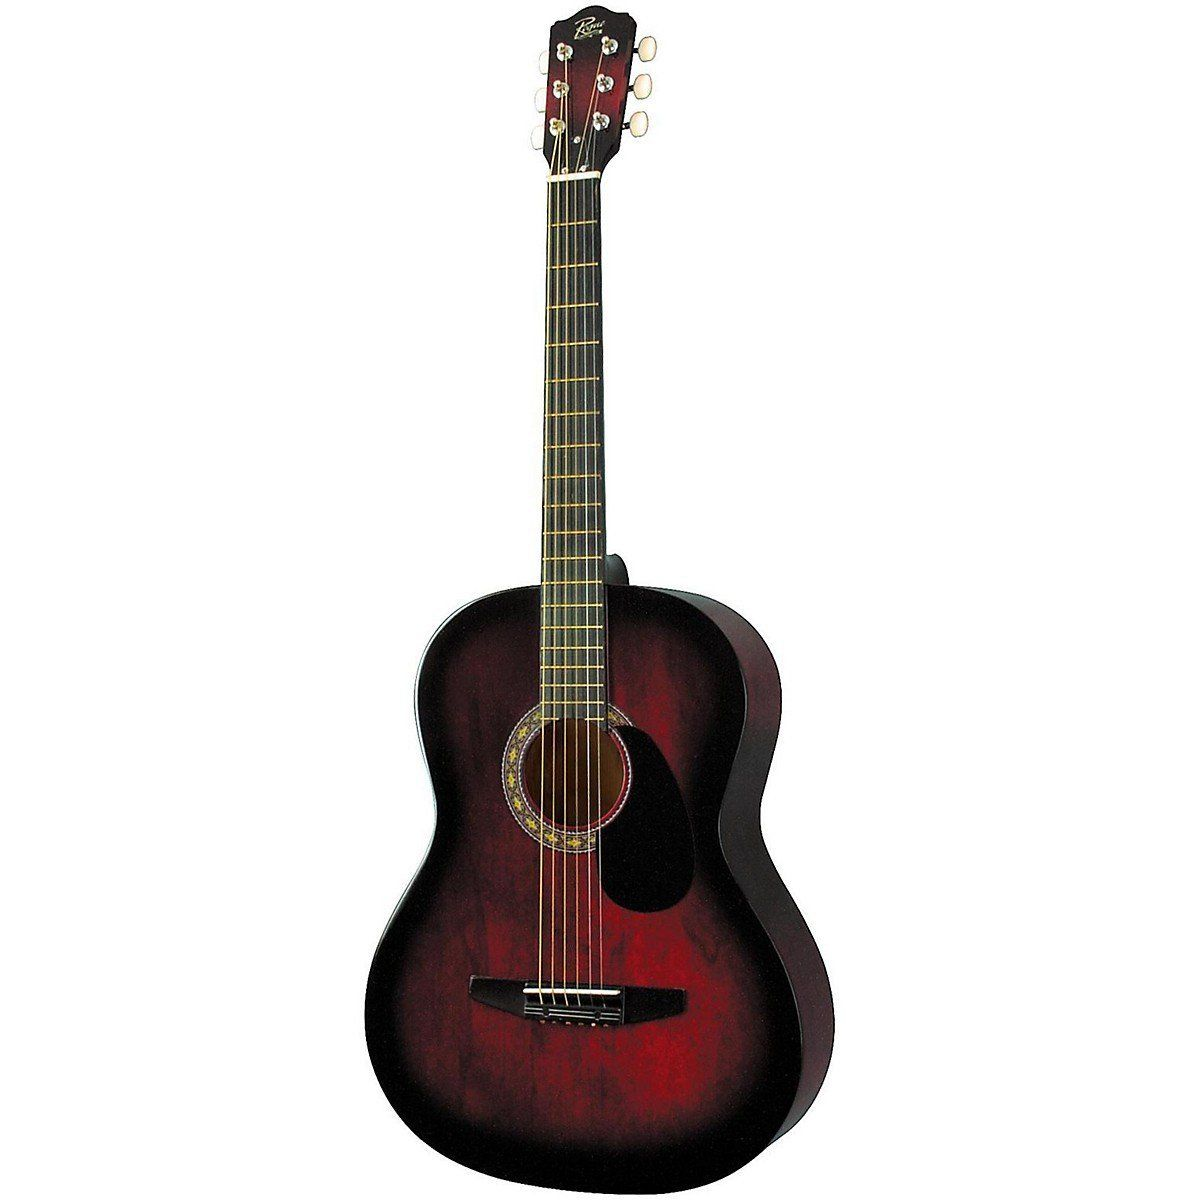 Amazon Com Rogue Starter Acoustic Guitar Red Burst Musical Instruments Guitar Acoustic Guitar Guitar Reviews